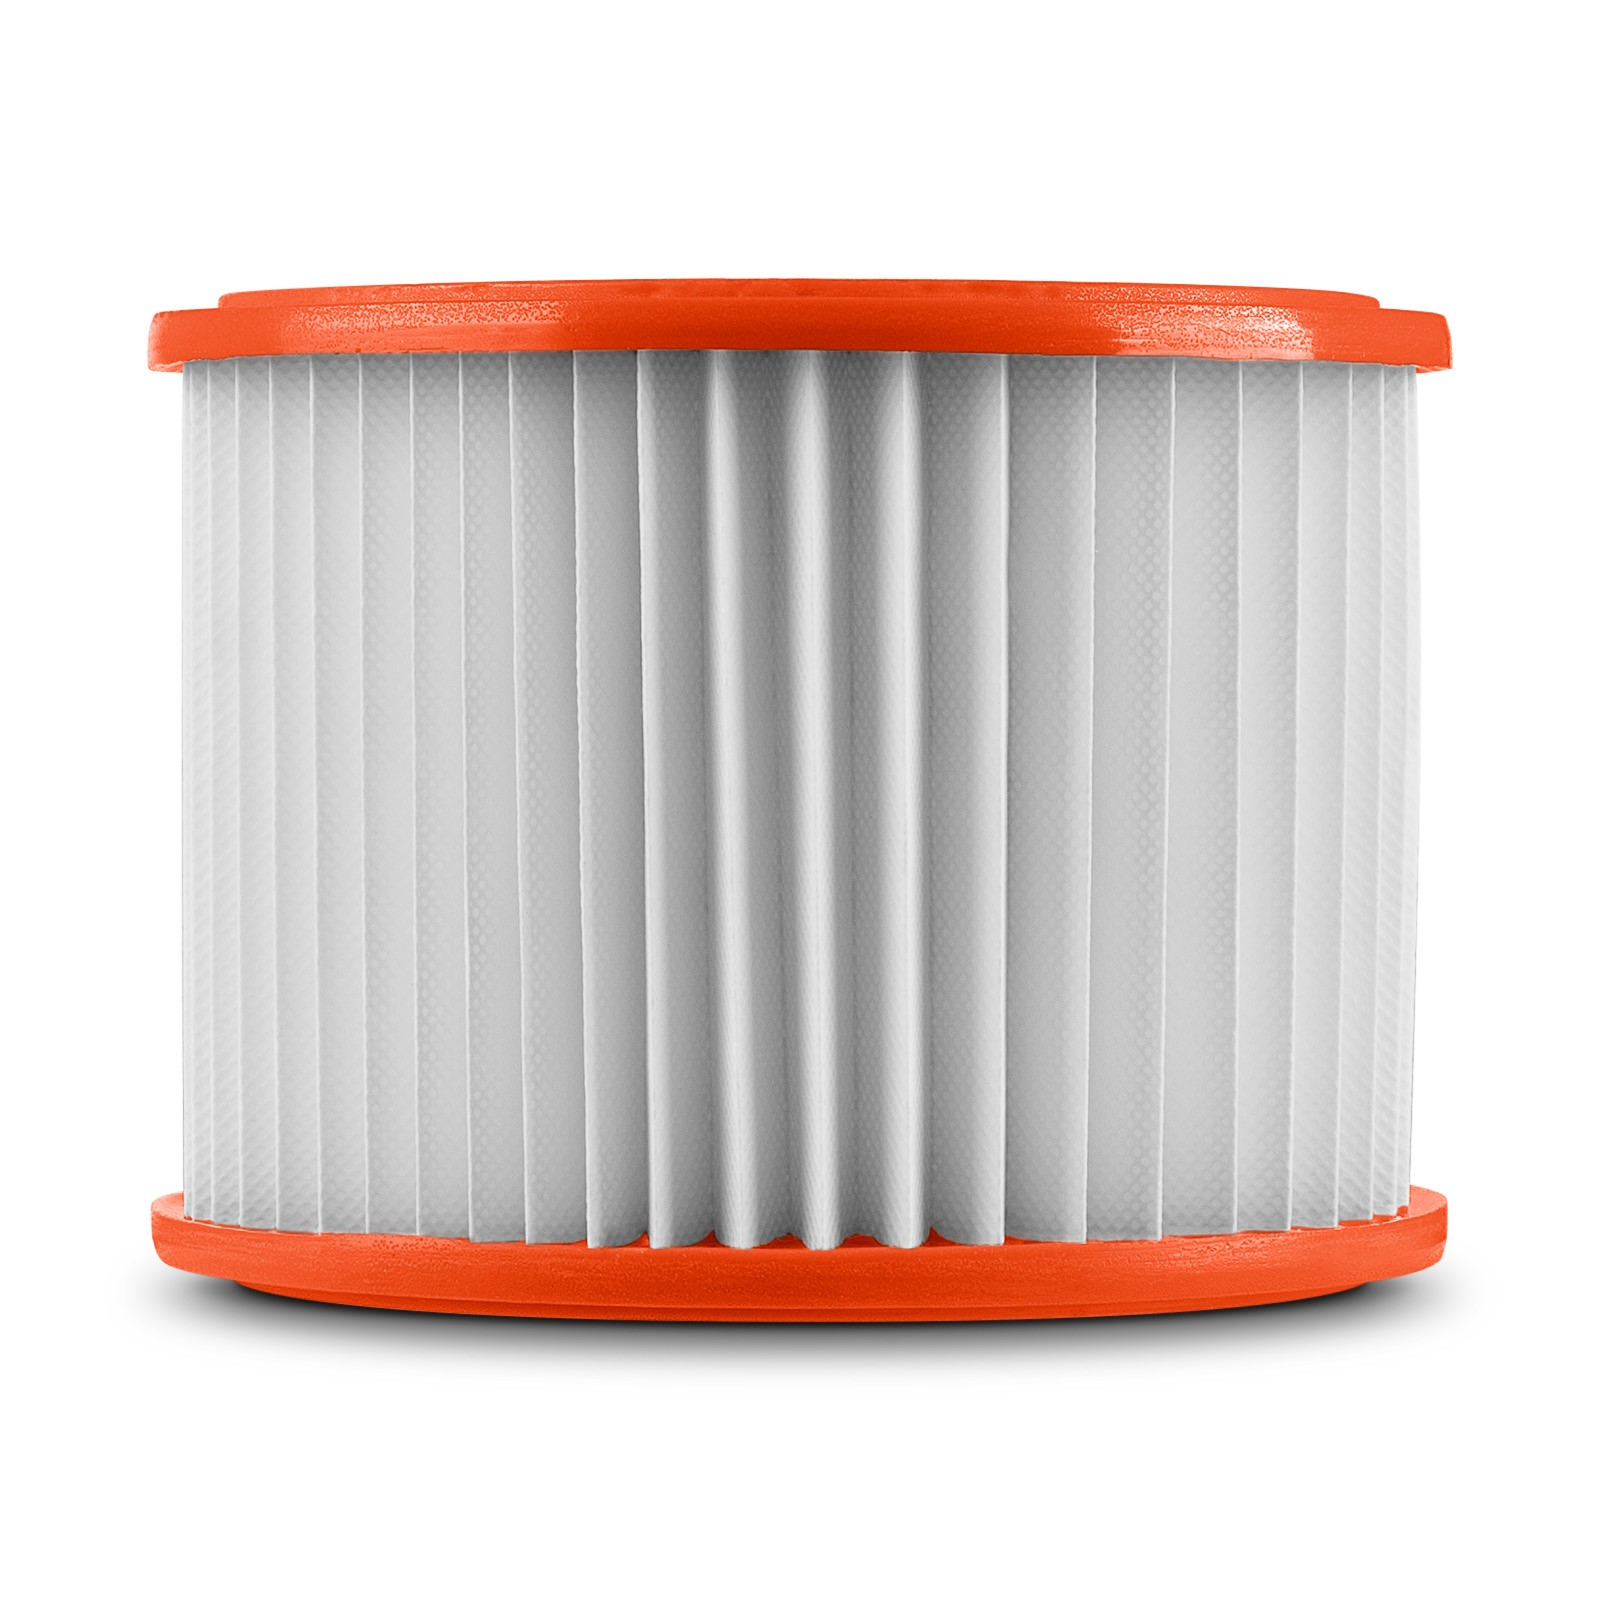 Gerni Cartridge Filter - Profile